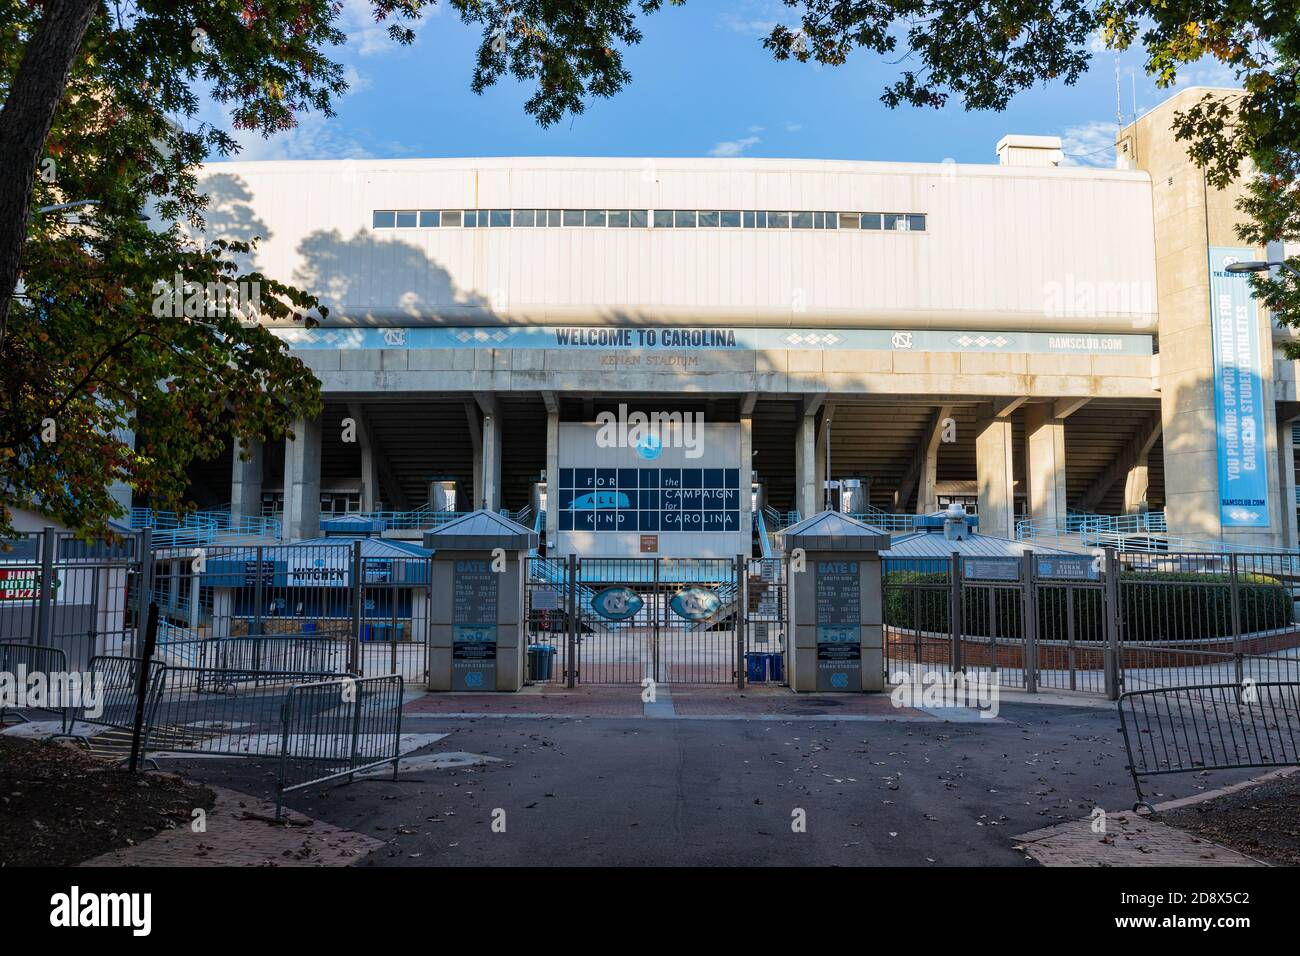 Chapel Hill, NC / USA - October 23, 2020: Kenan Stadium on the campus of the University of North Carolina Stock Photo